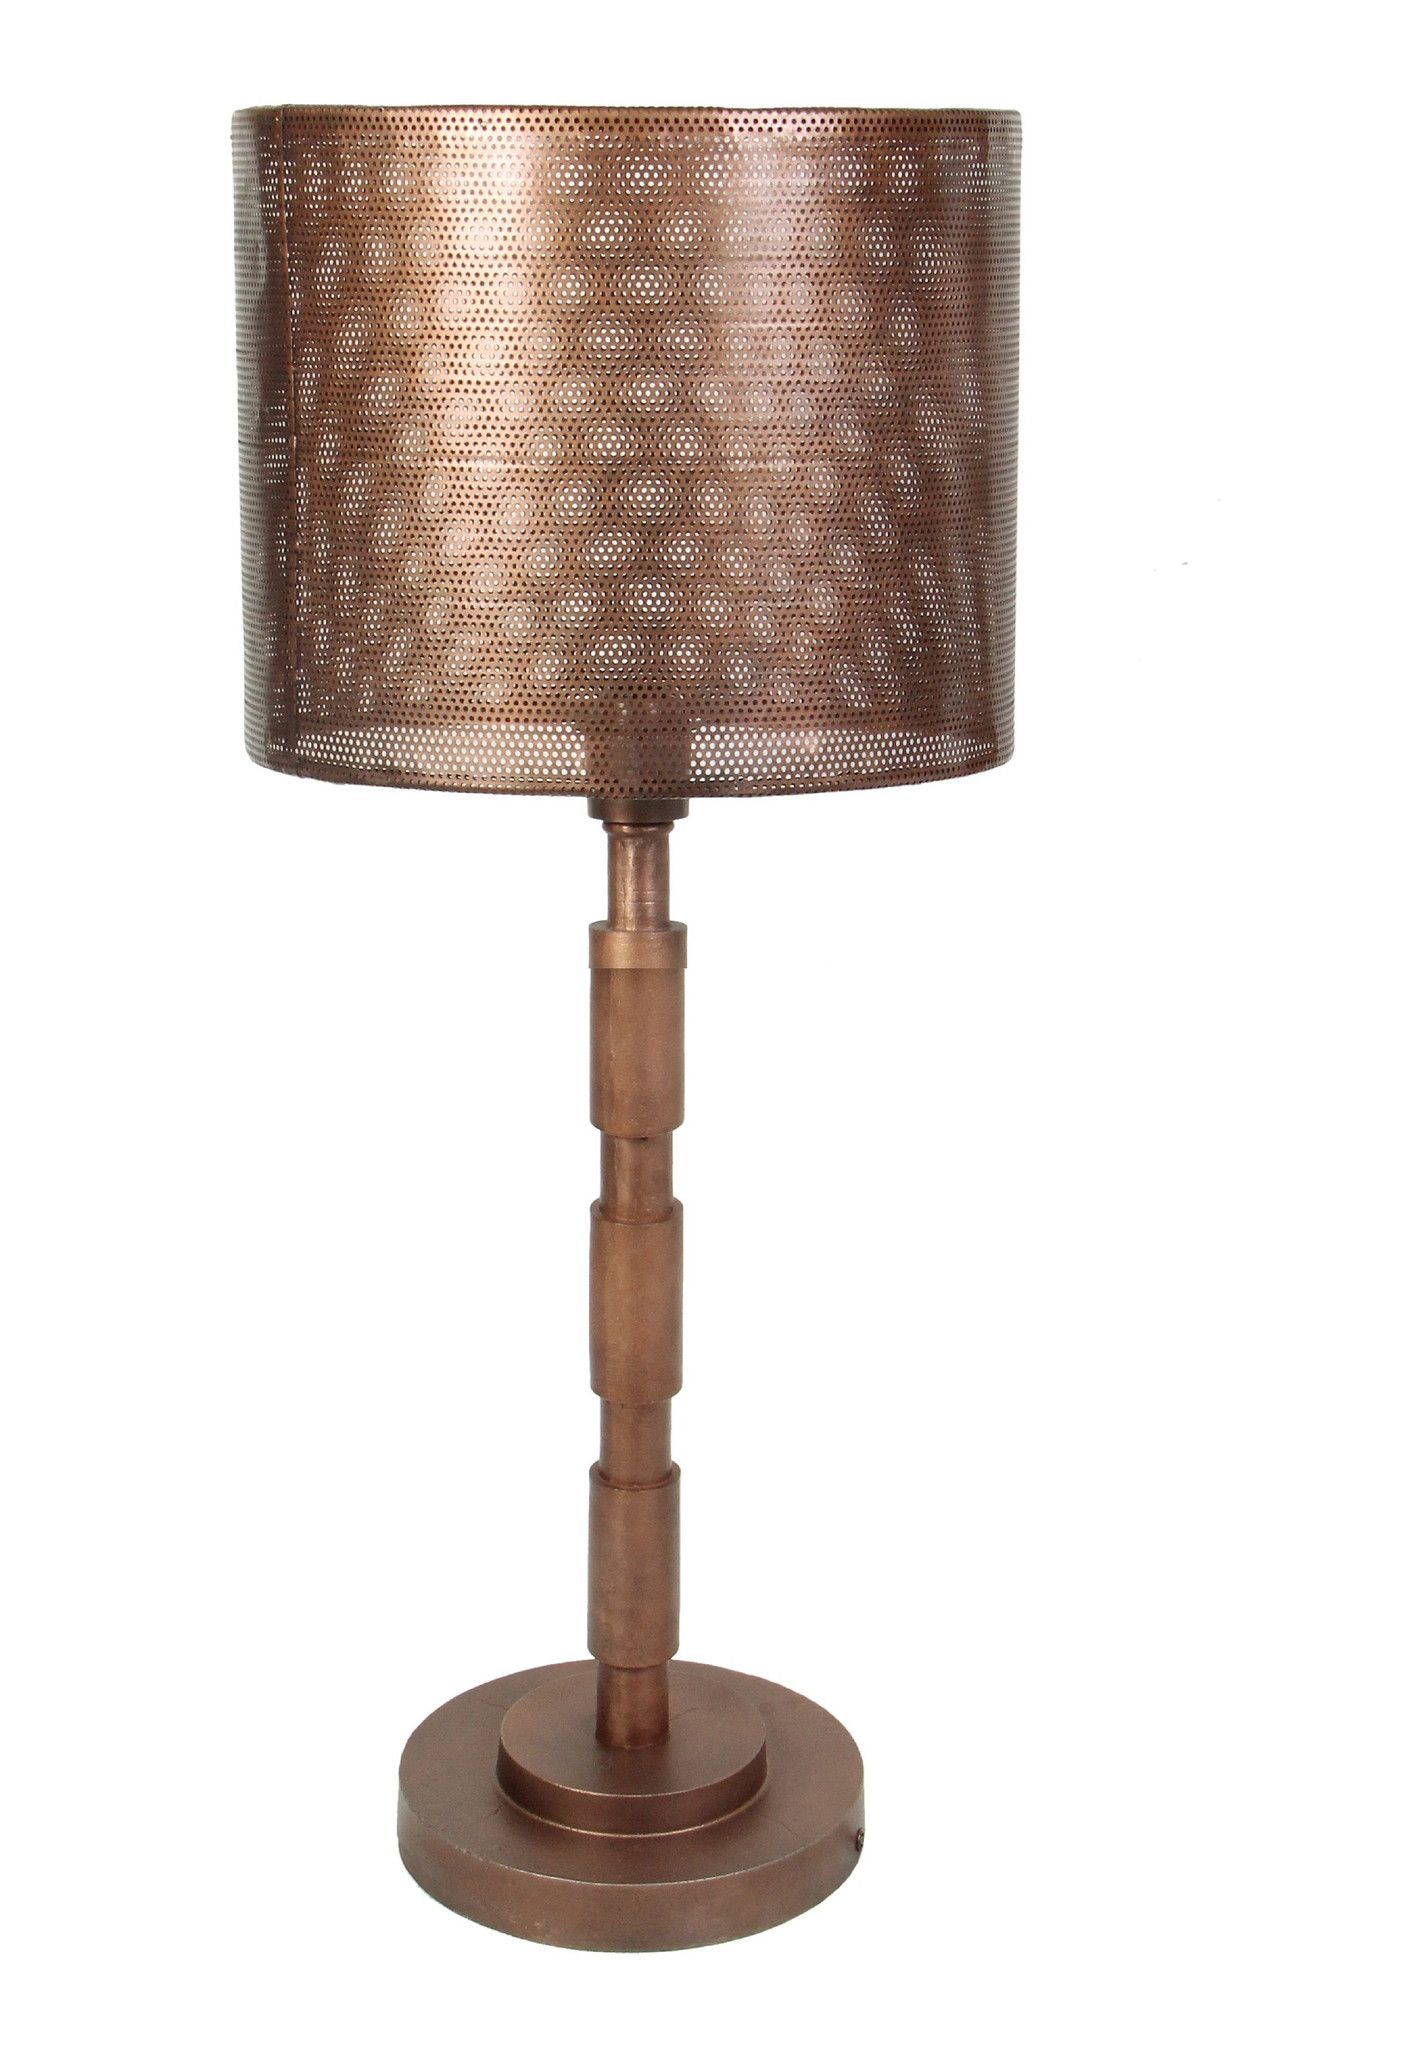 galvin table lamp bronze wohnen licht pinterest iron rh pinterest com